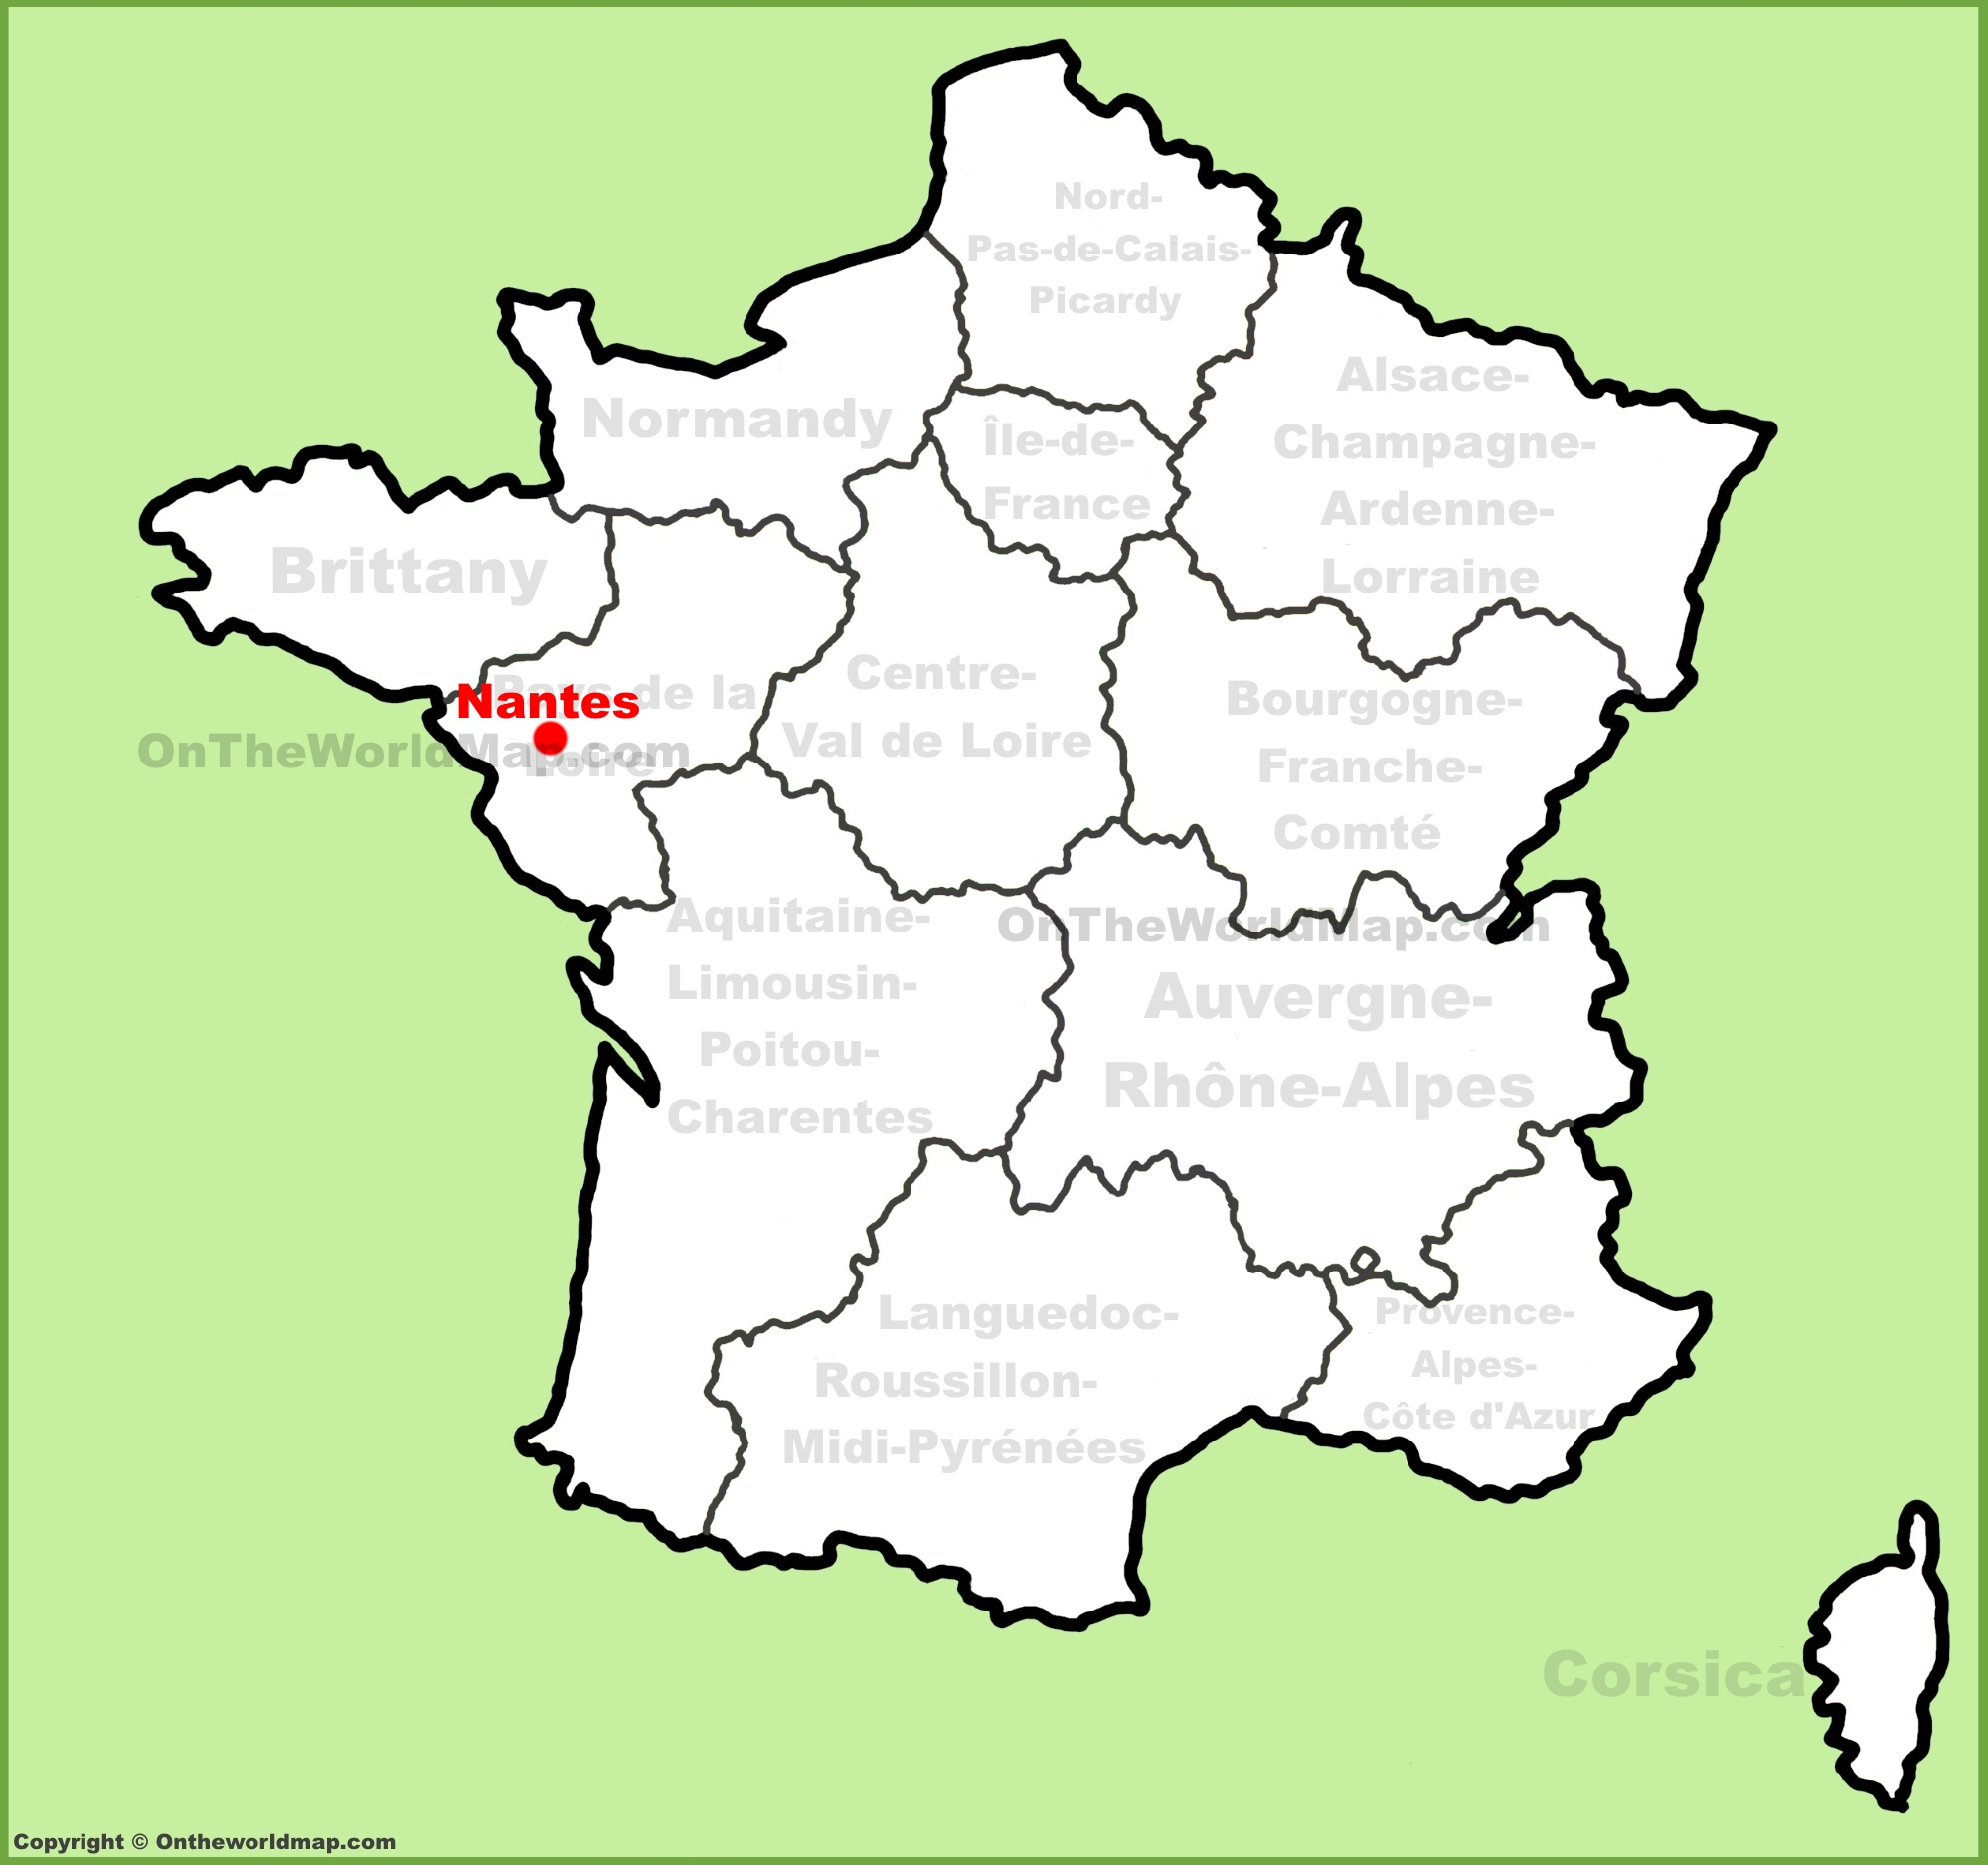 Nantes location on the France map